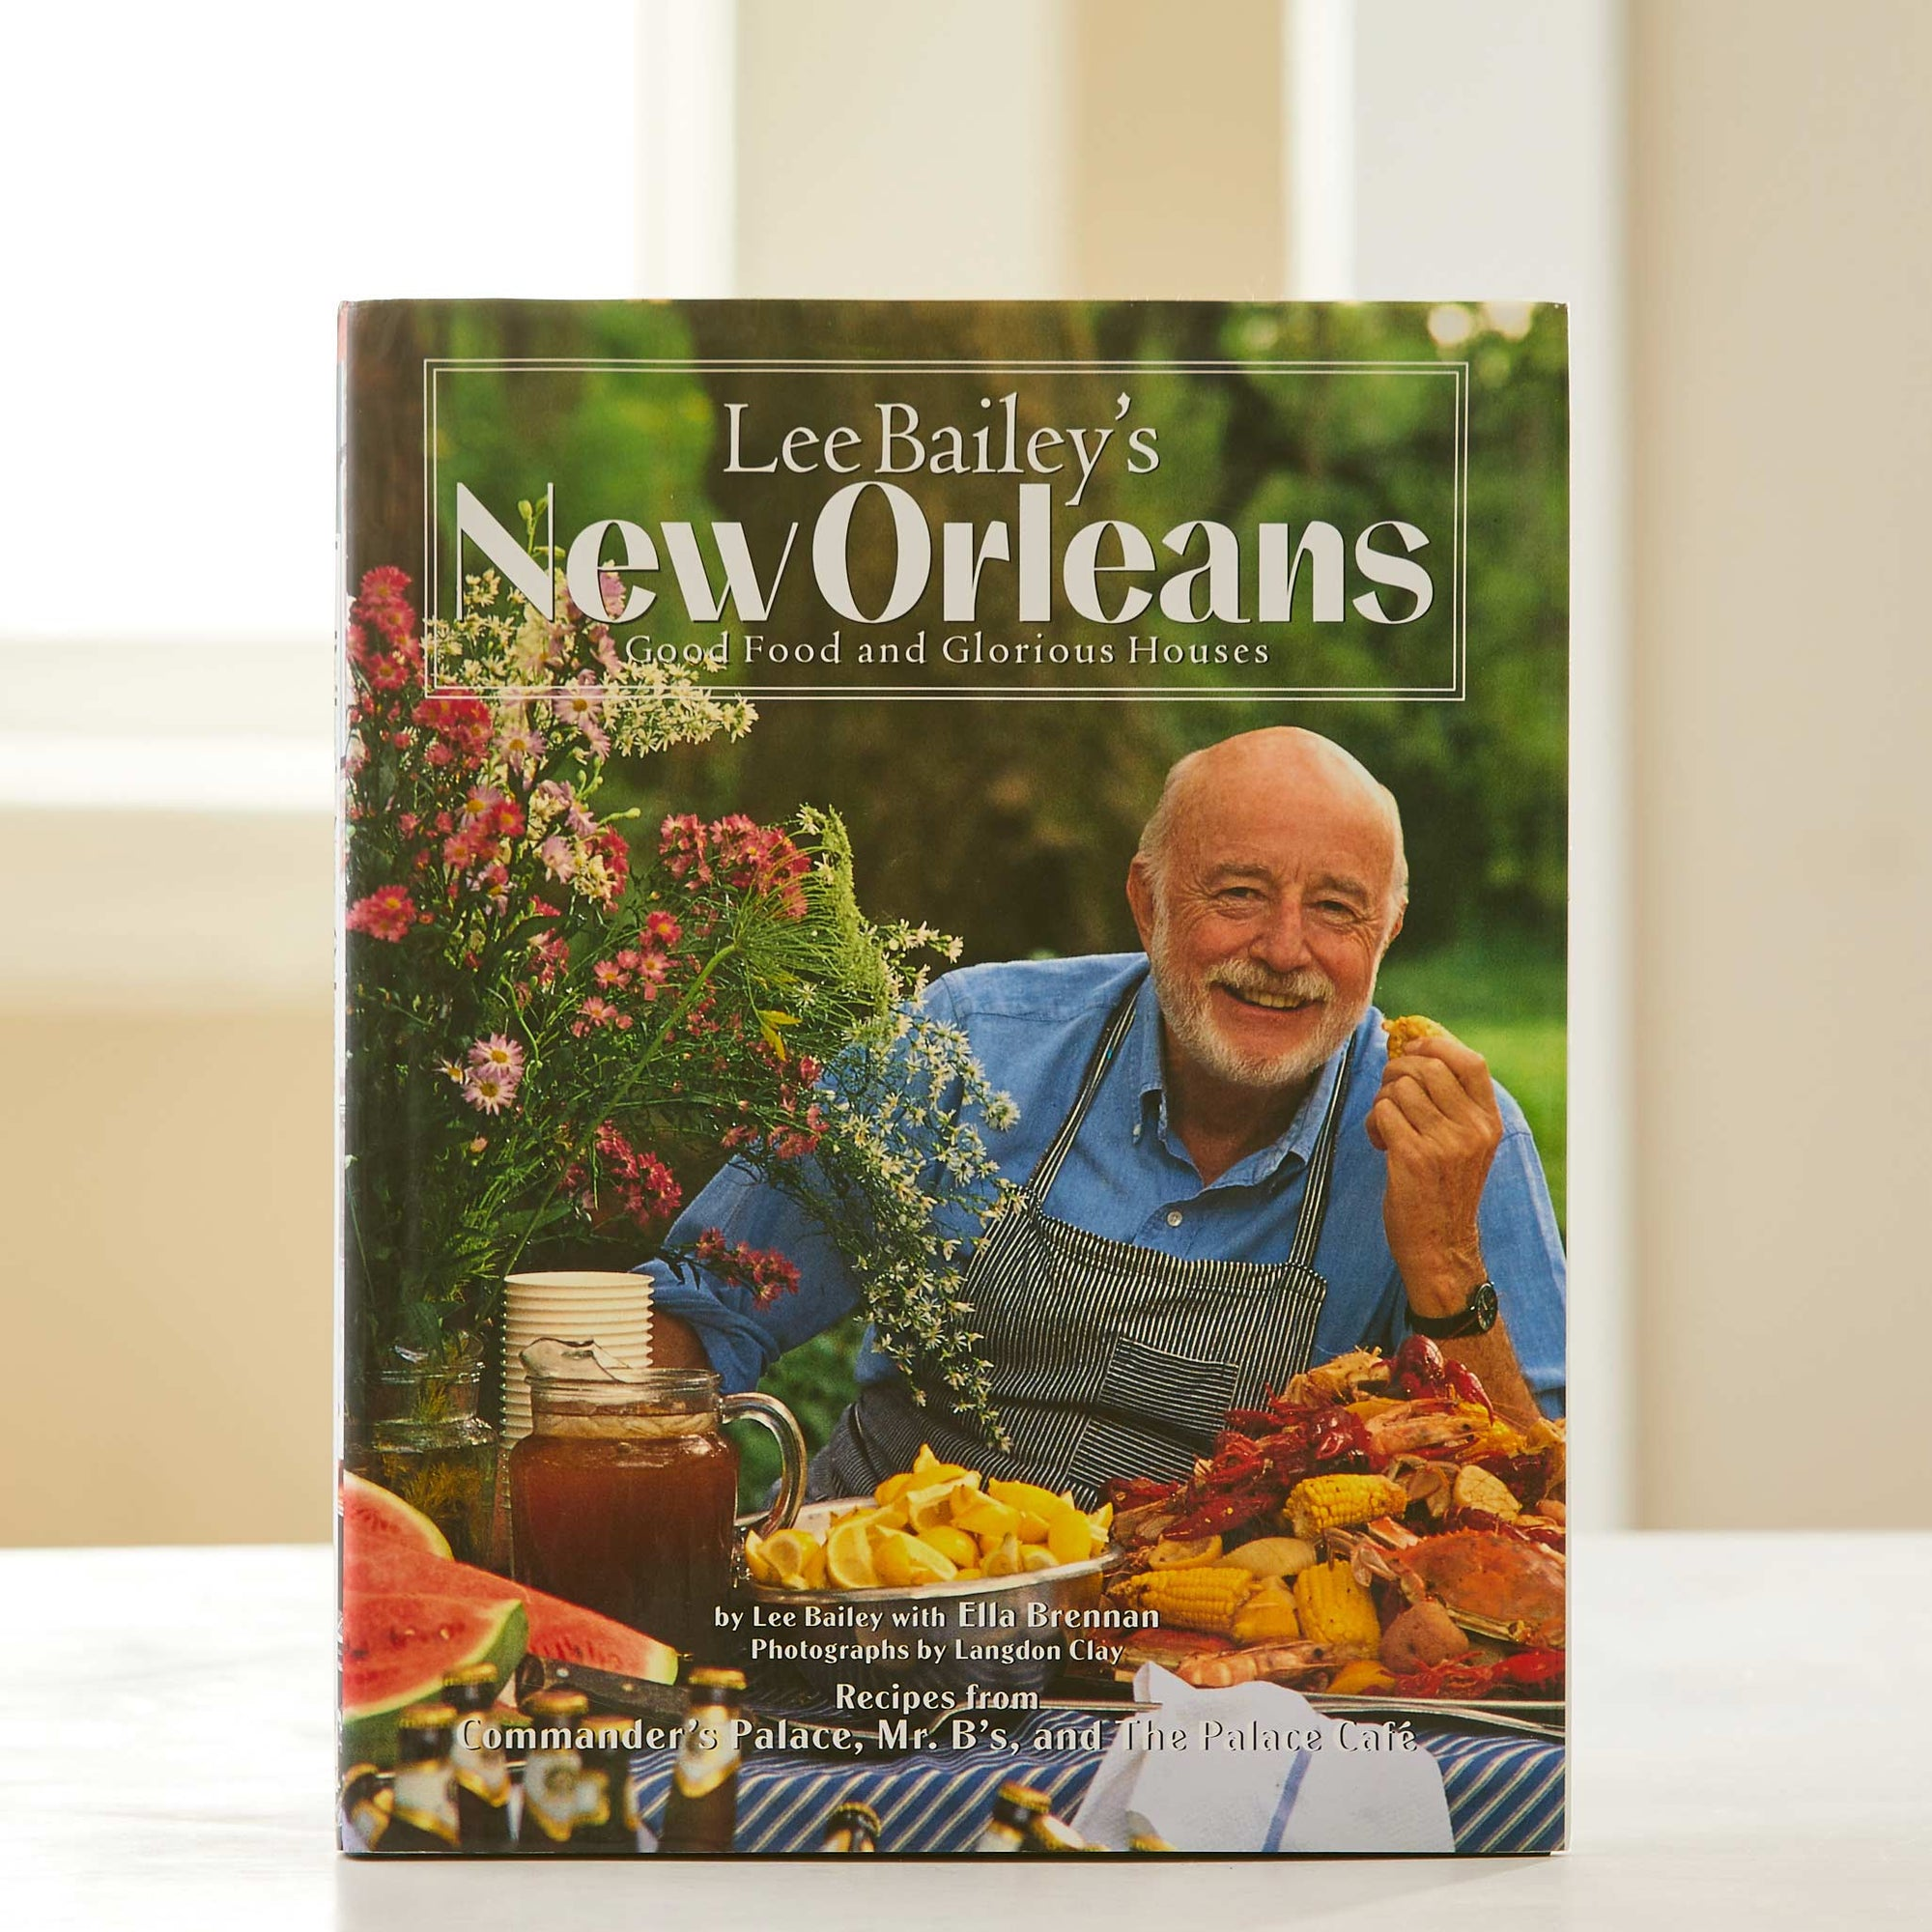 Lee Bailey's New Orleans Cookbook. Celebrating Bayou cooing & French Quarter decor before Paul Prudhomme & Emeril Lagasse made it cool. Seafood magic.